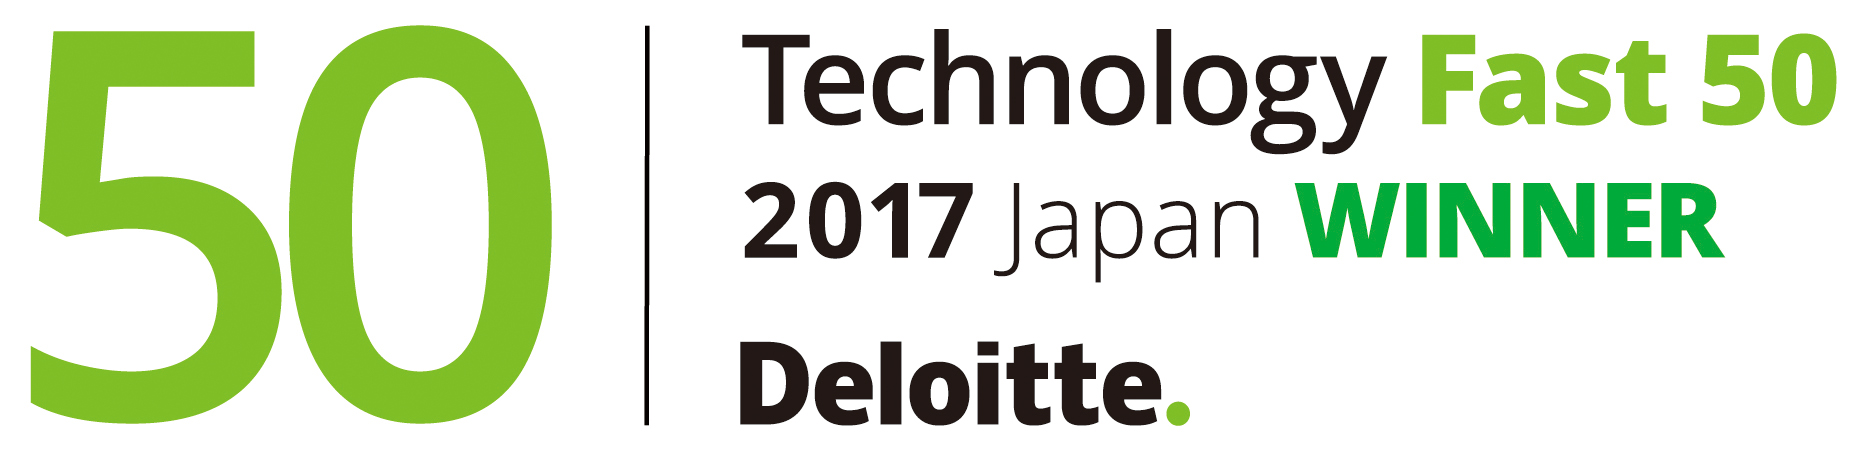 Technology_Fast50_2017_Japan_WINNER_Deloitte